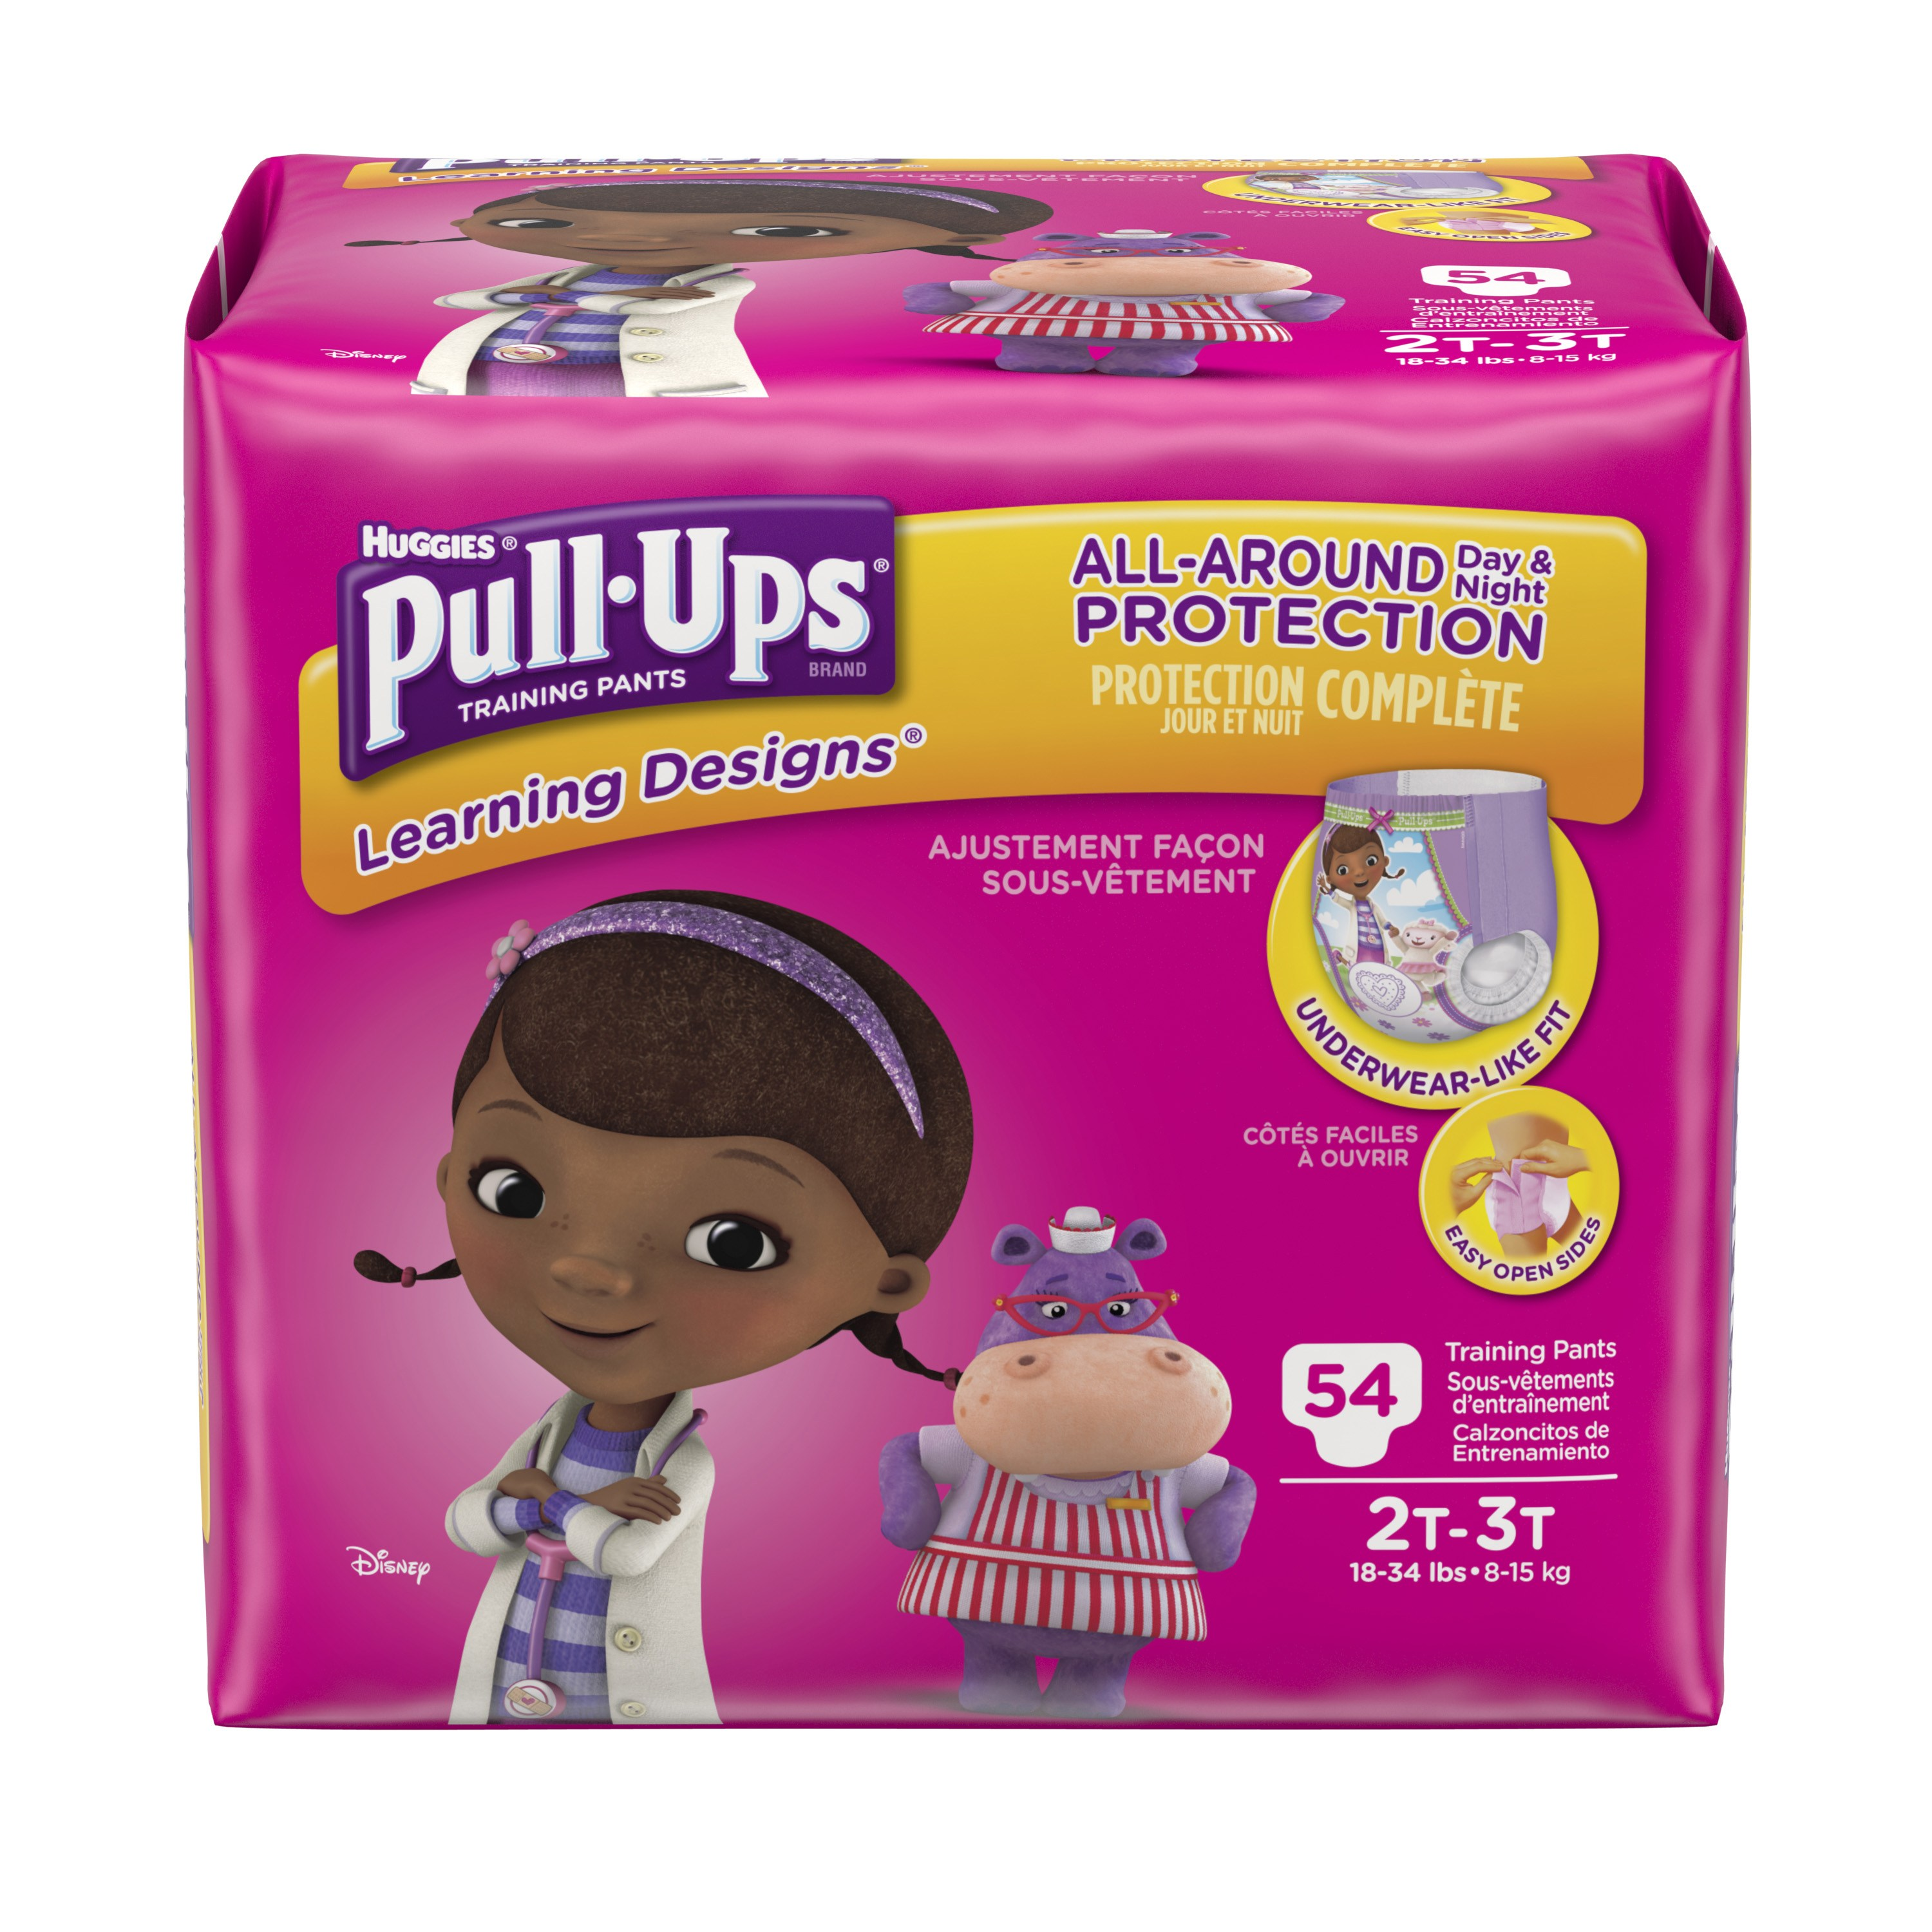 Pull-Ups Girls' Learning Designs Training Pants, Size 2T-3T, 54 Count